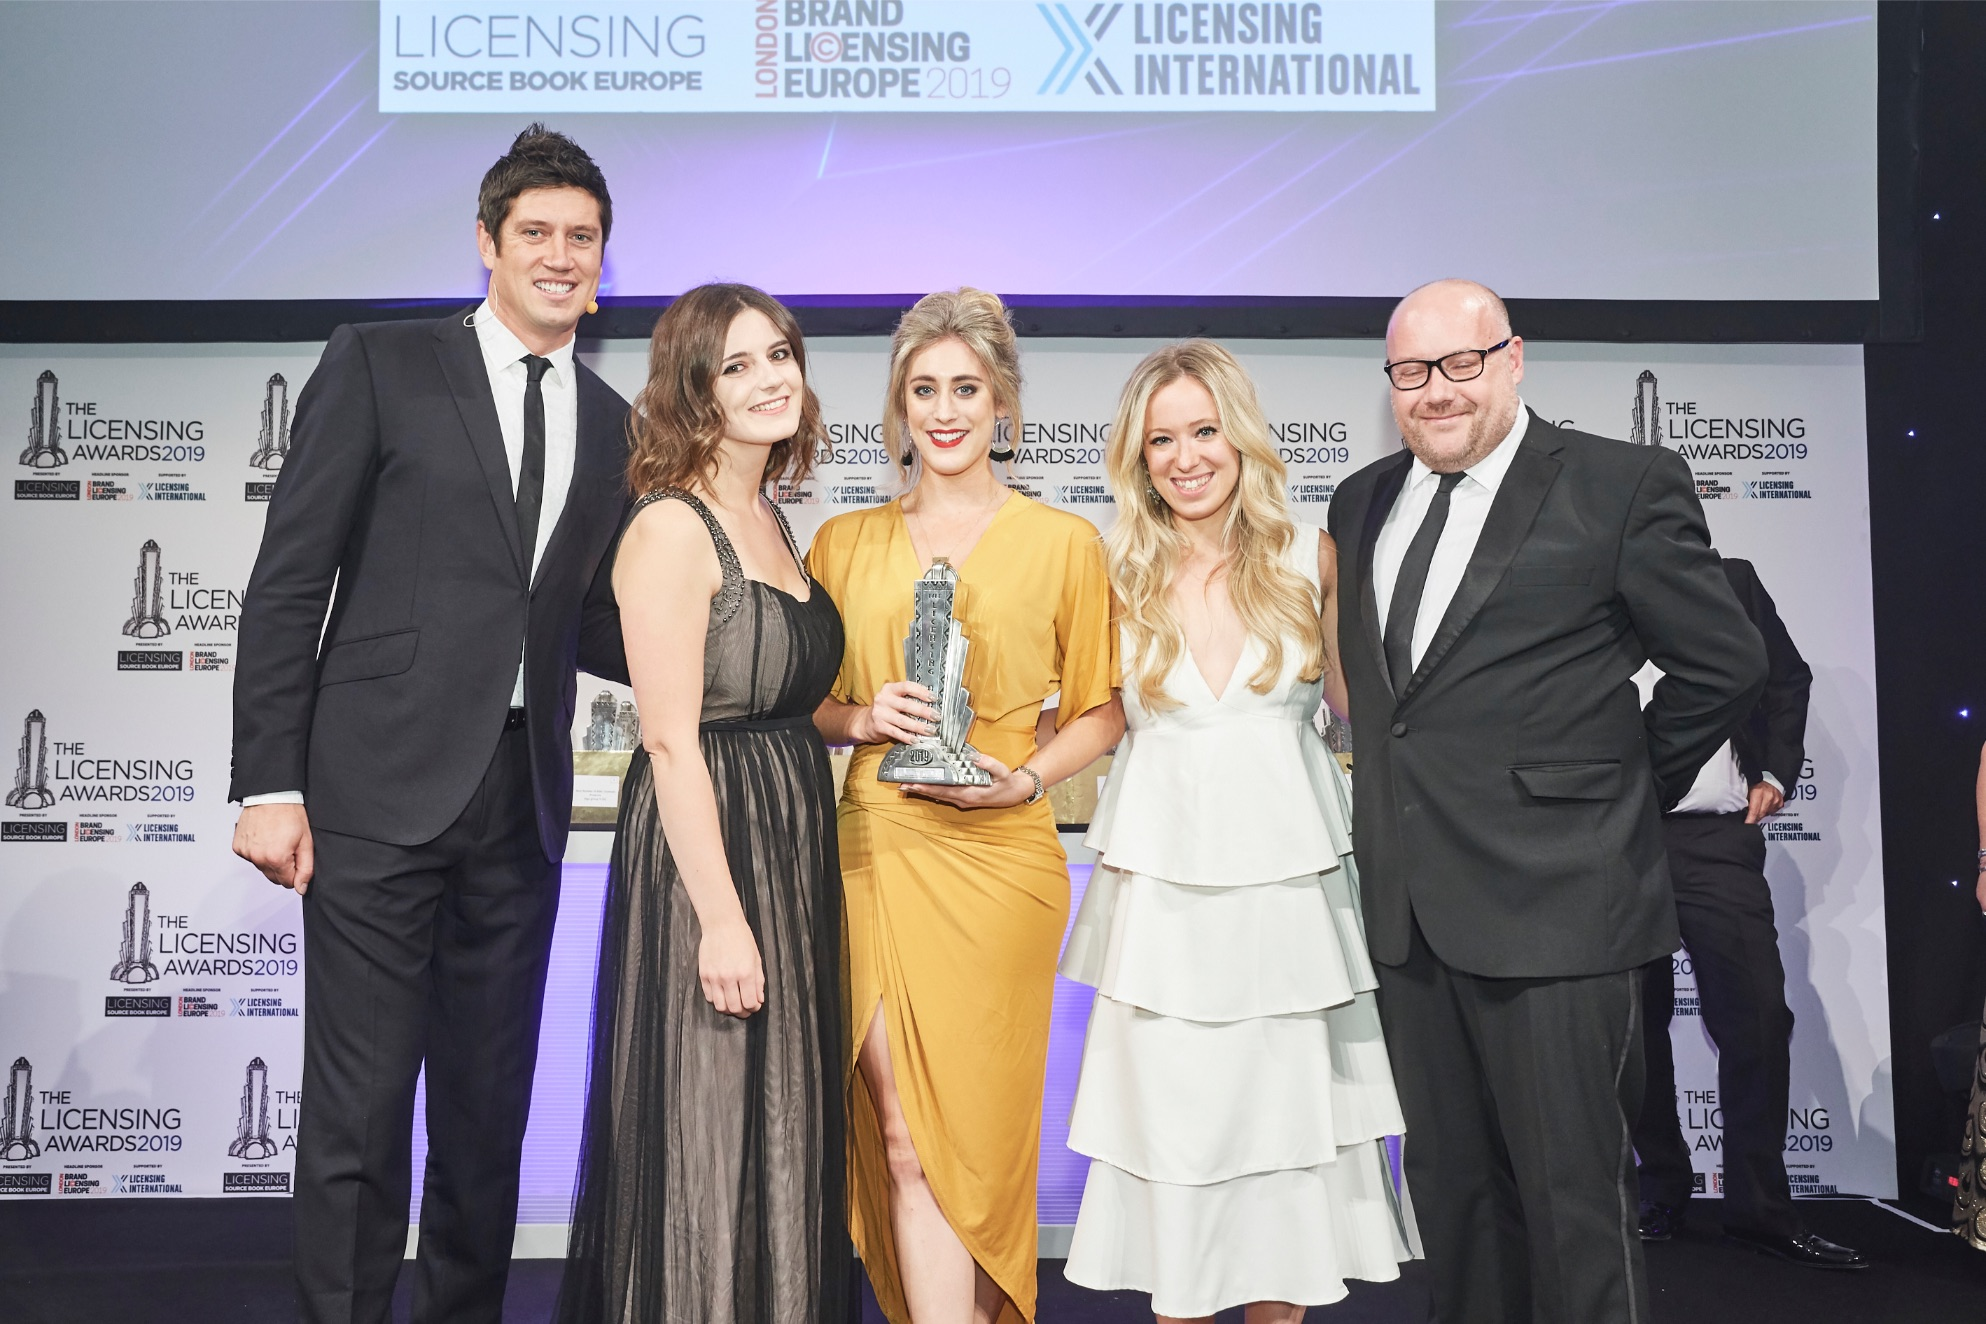 Licensing Awards 2019